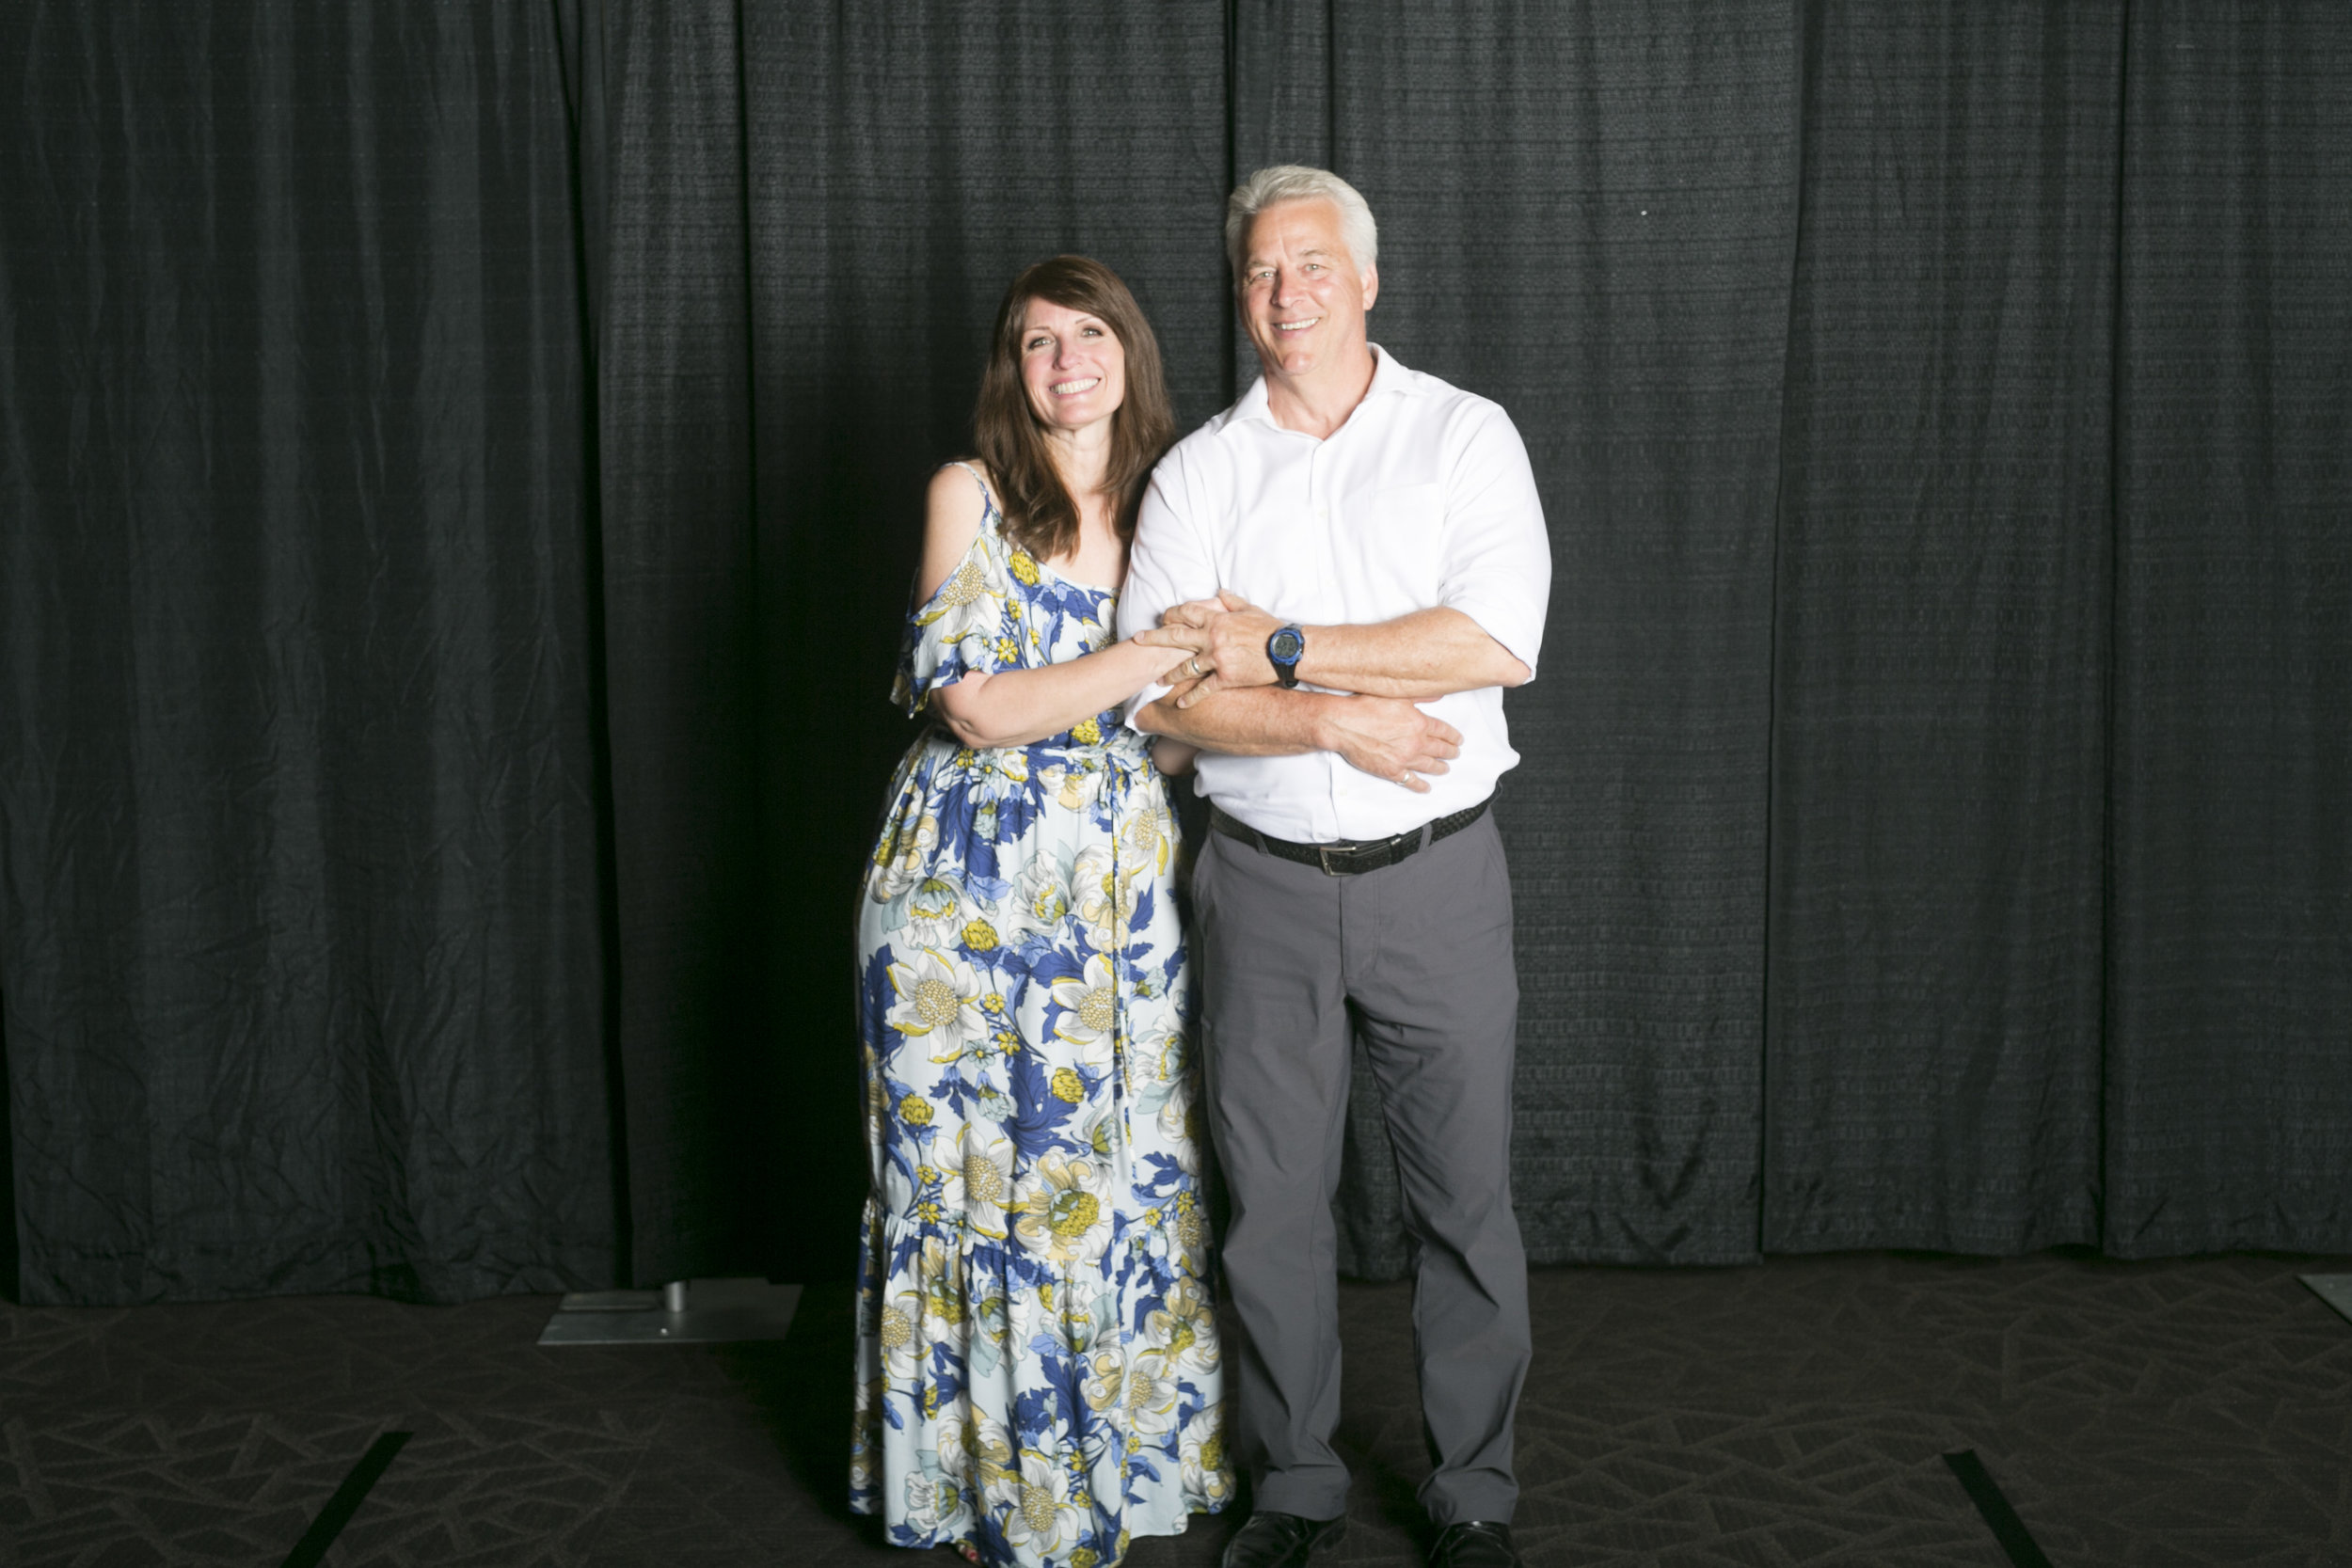 wedding photo booth-55.jpg